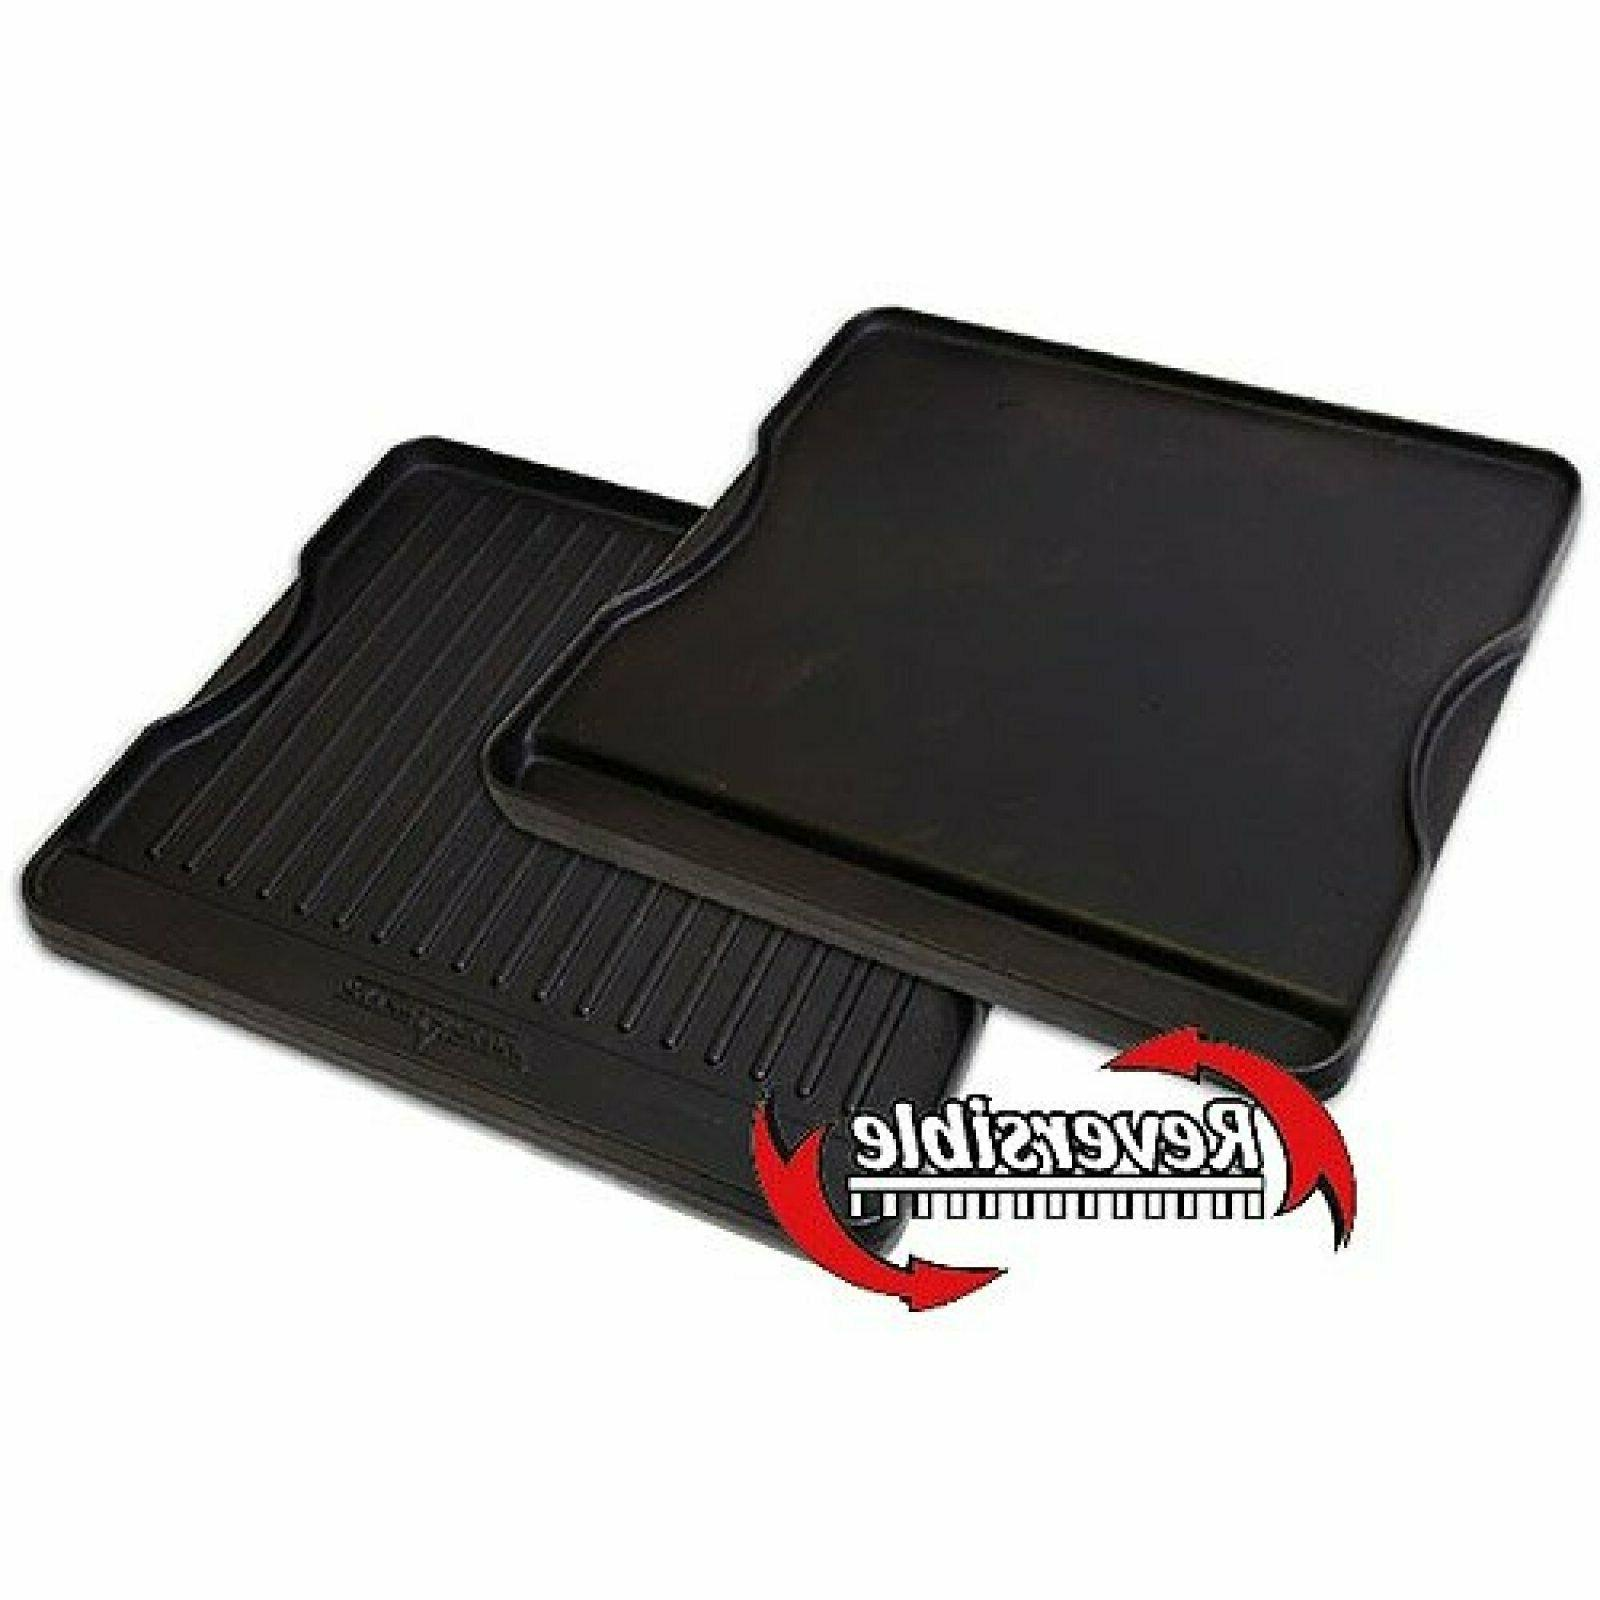 Camp Chef Reversible 2 Sided Cast Iron Griddle-N-Grill Detac